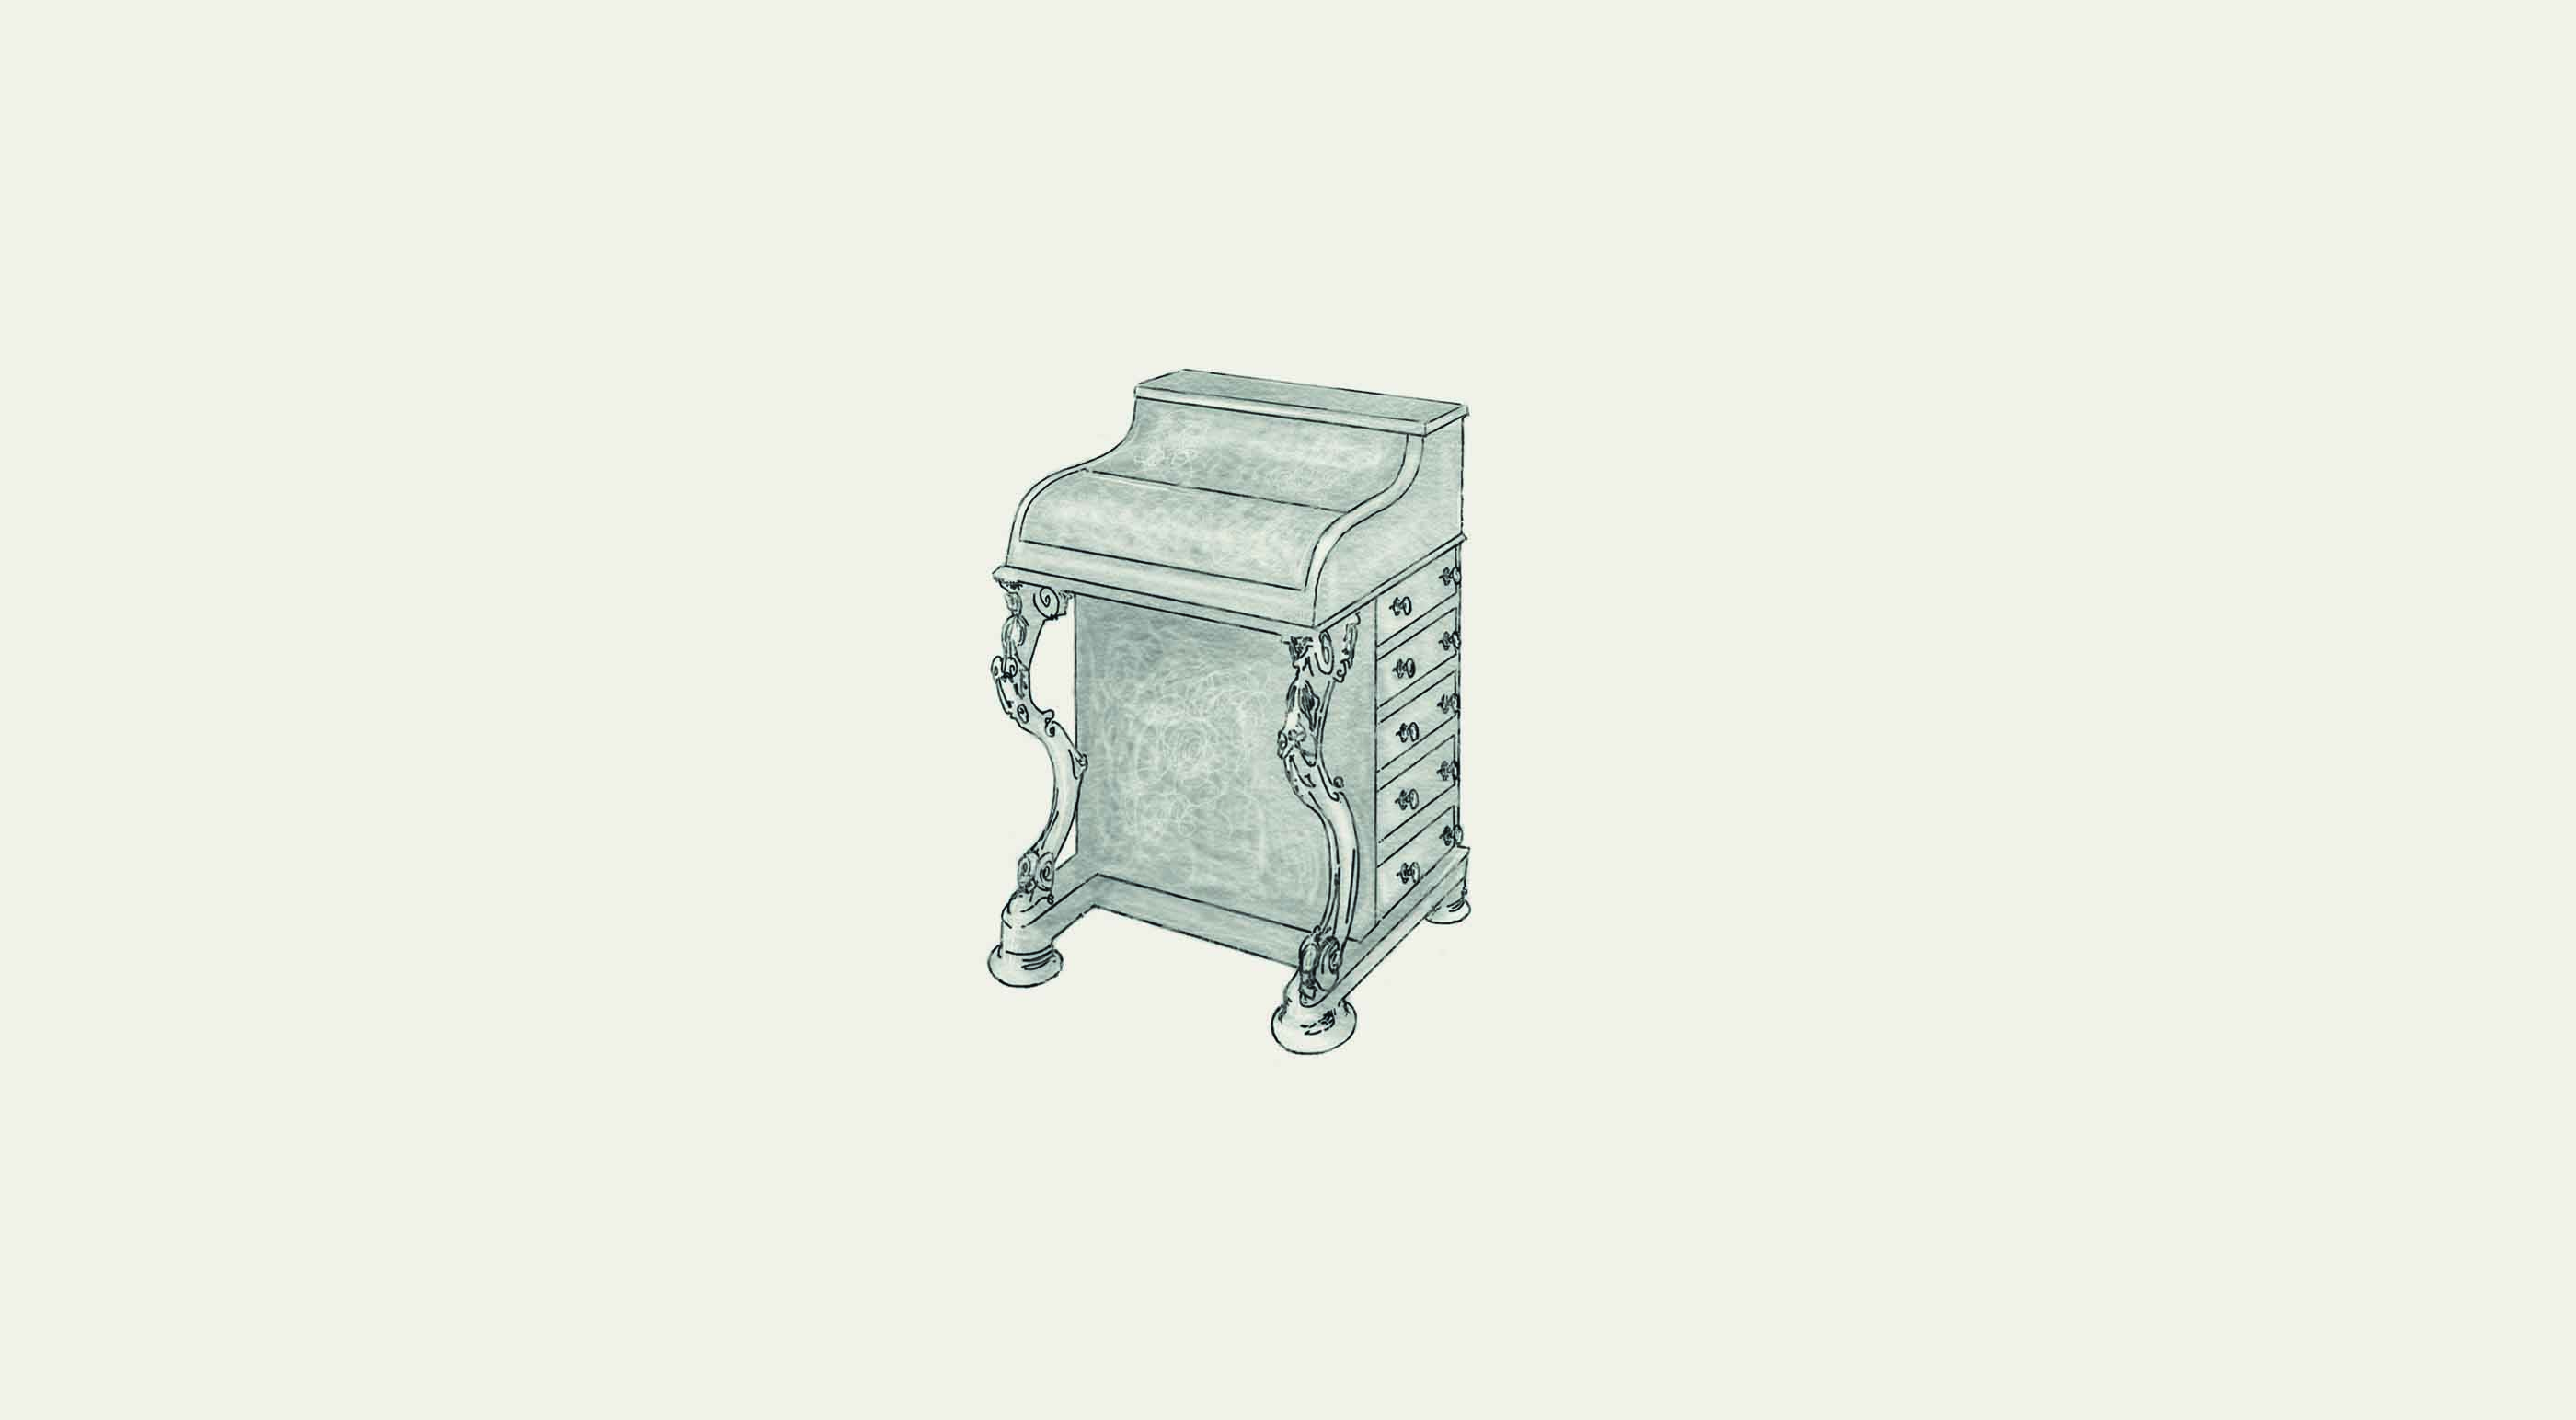 Sketch of a victorian chest of drawers